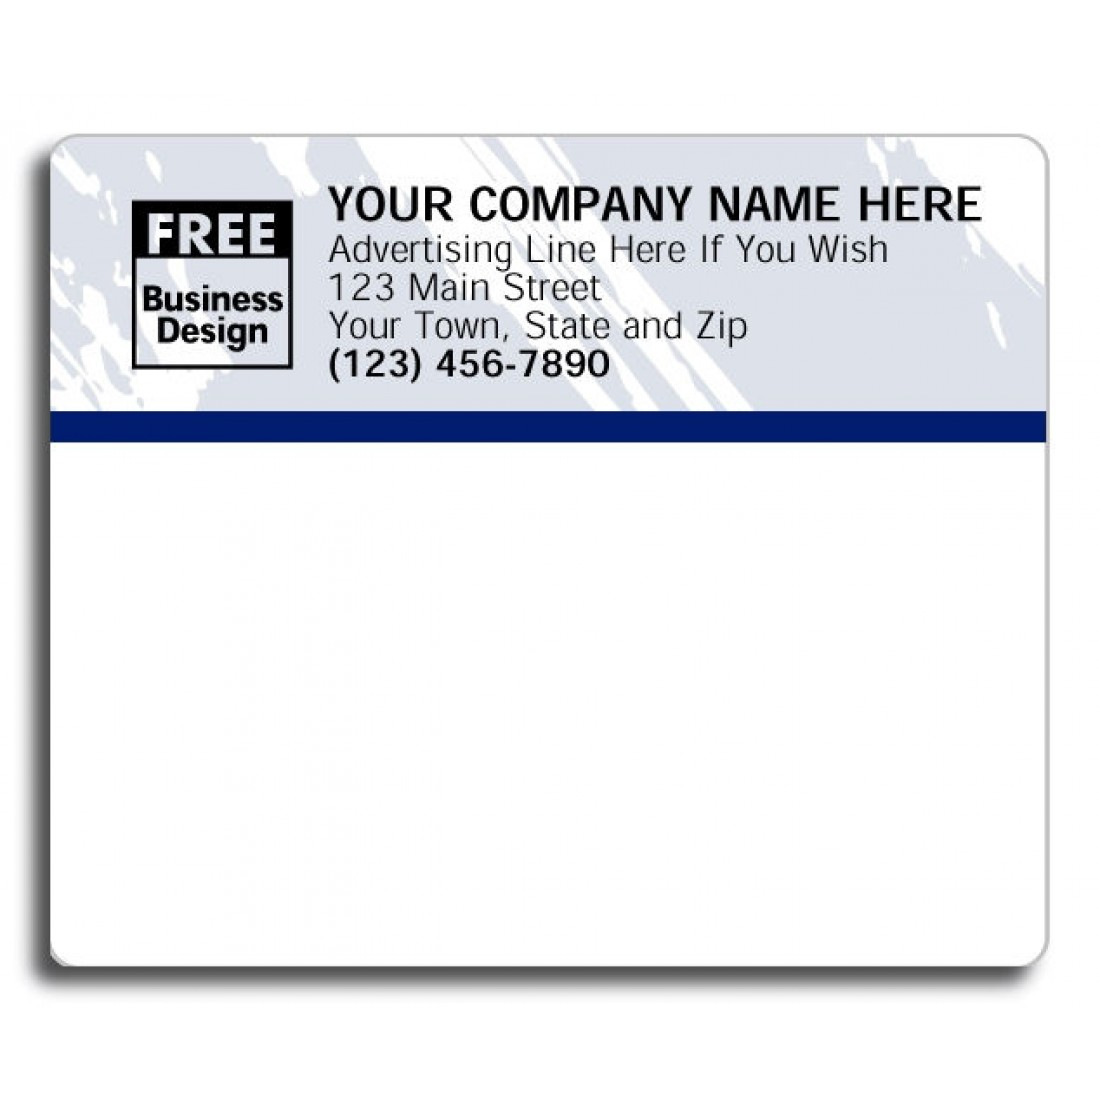 We'll then print and ship your free address labels to you within hours and you're all set, no purchase necessary! If you find your new address labels, prompt delivery, and our excellent customer service to your liking we hope you'll take some time to peruse our other address label styles and Evermine products.